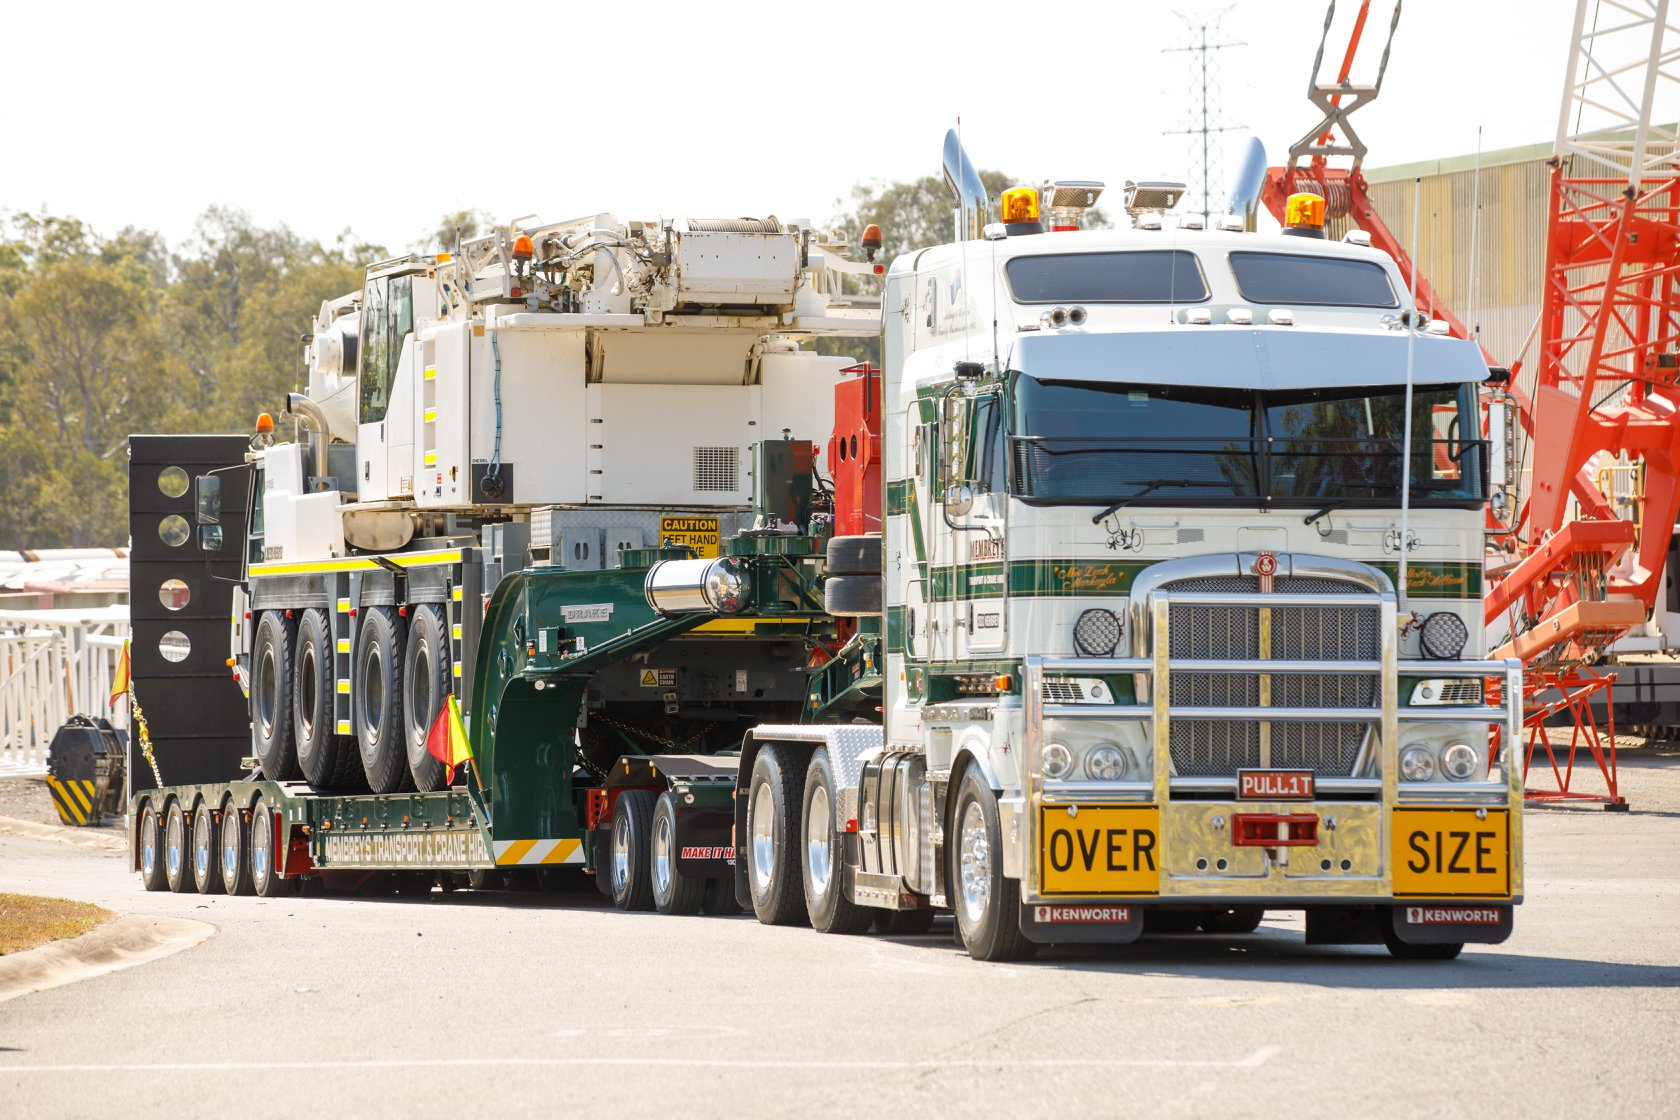 Membrey's Trailer fully loaded with liebherr